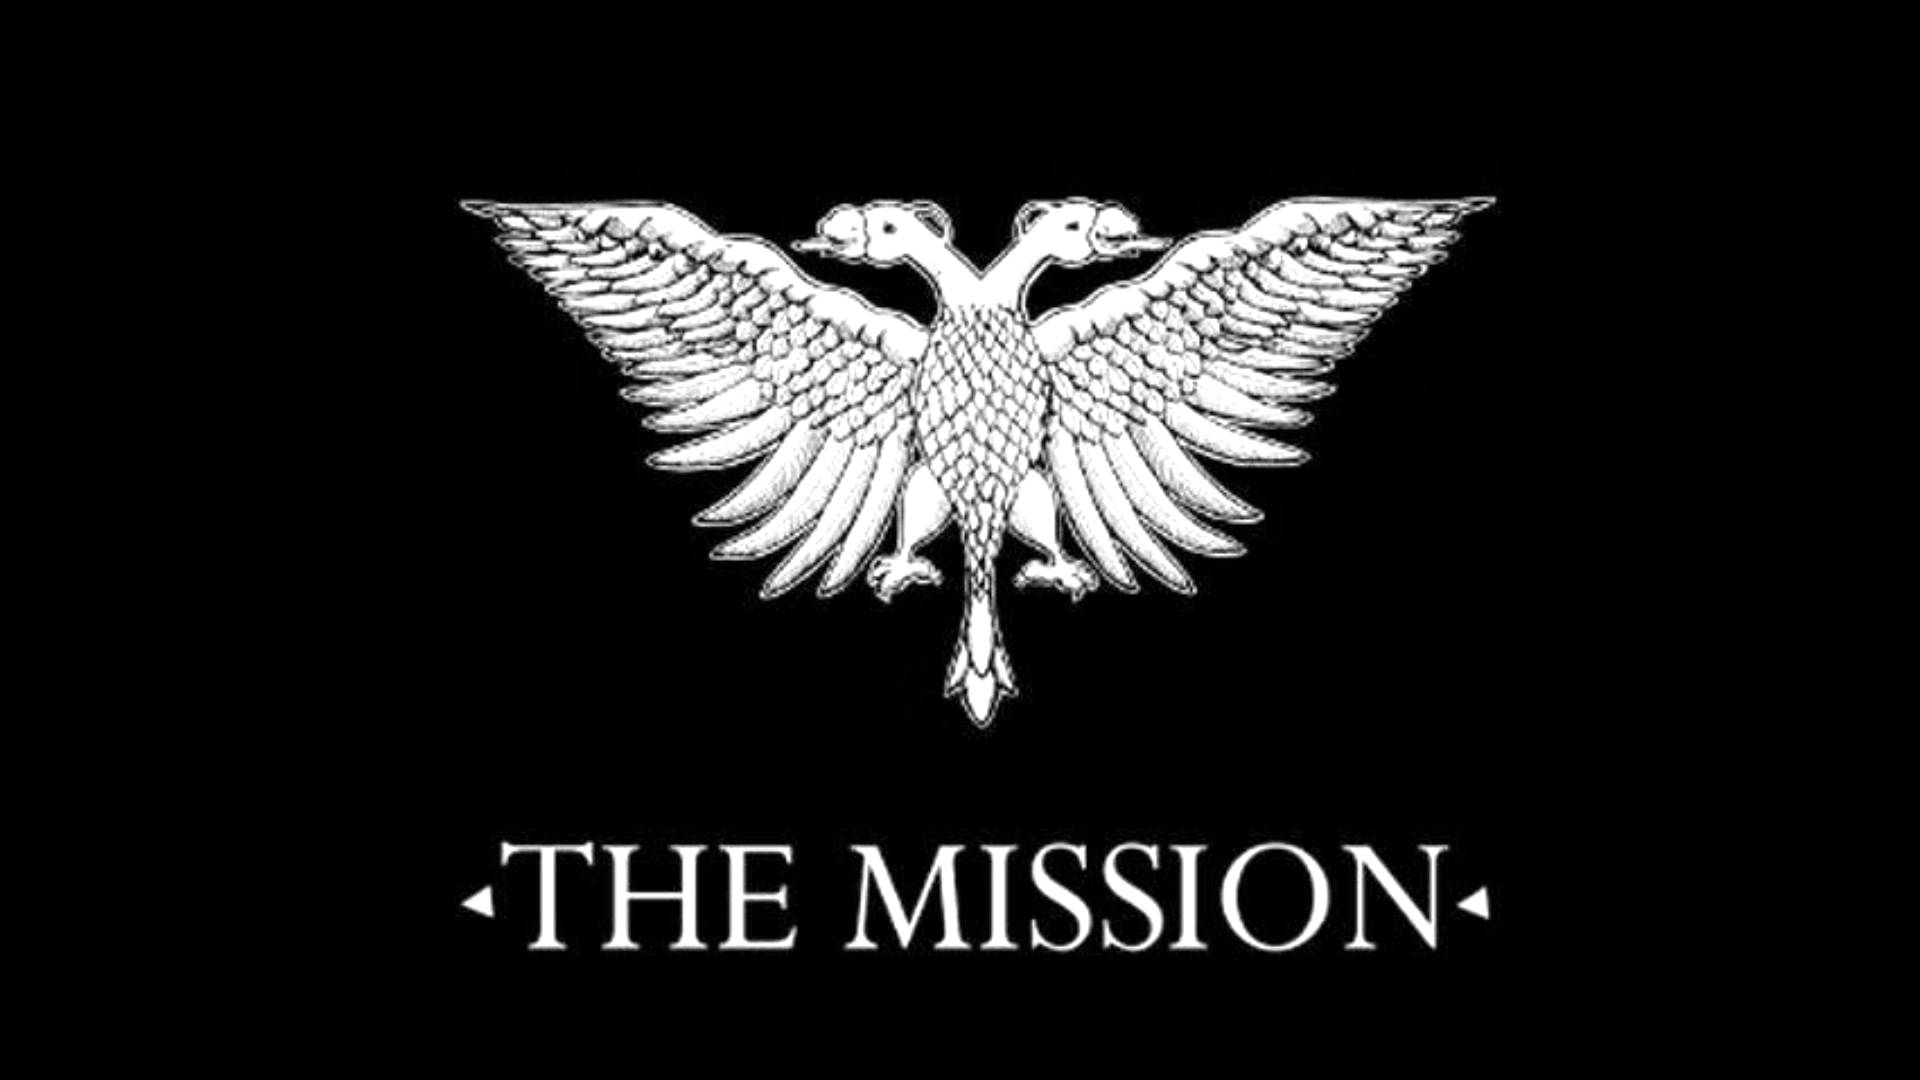 HQ The Mission Uk Wallpapers   File 82.86Kb